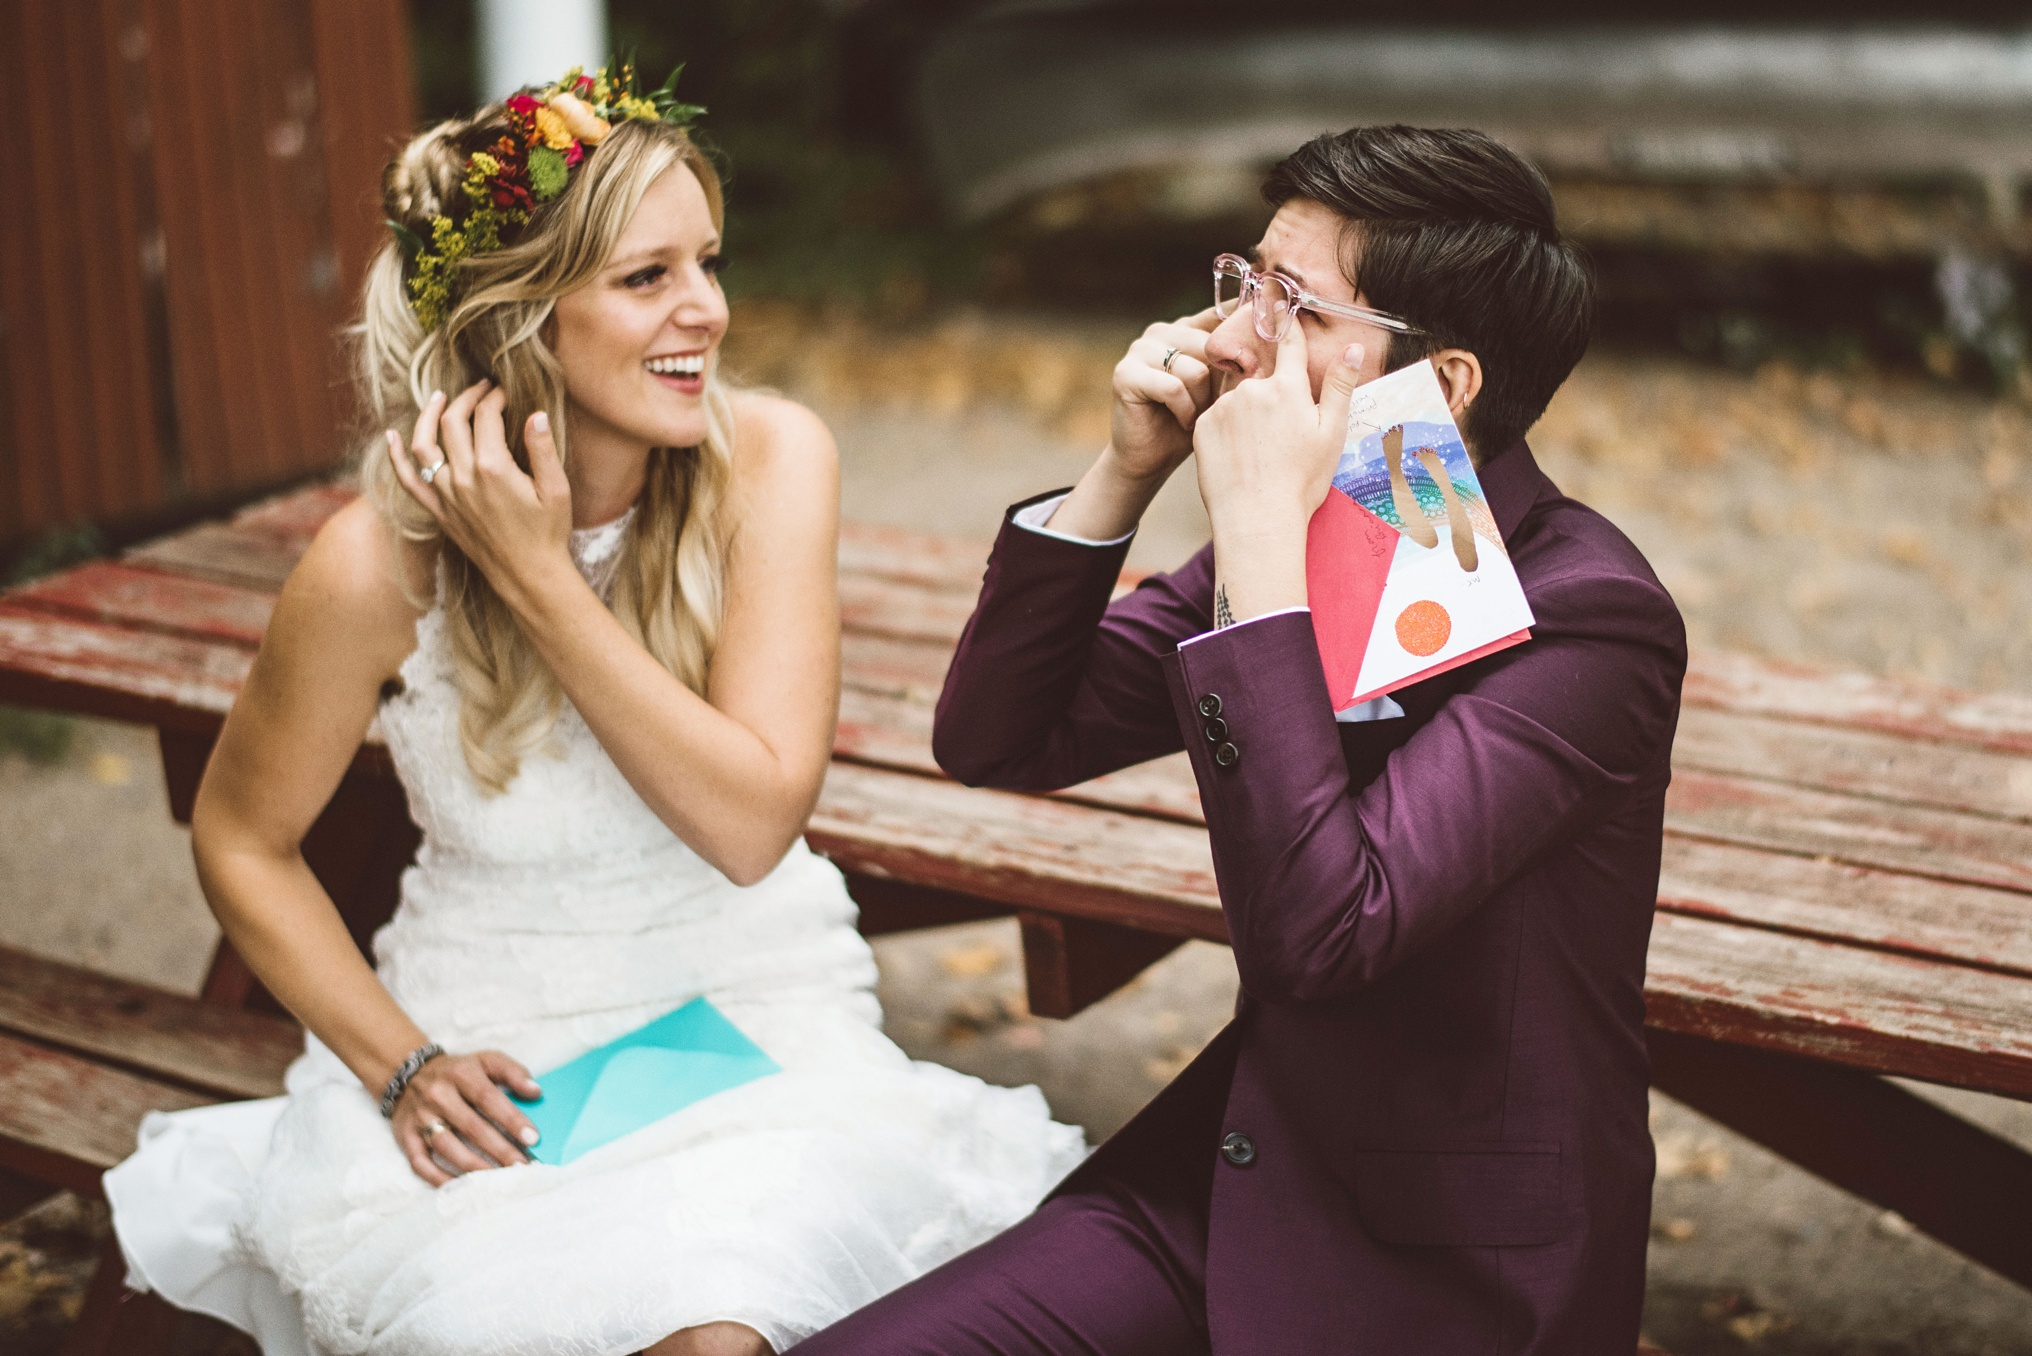 best_wedding_photography_2017_by_lucas_botz_photography_299.jpg